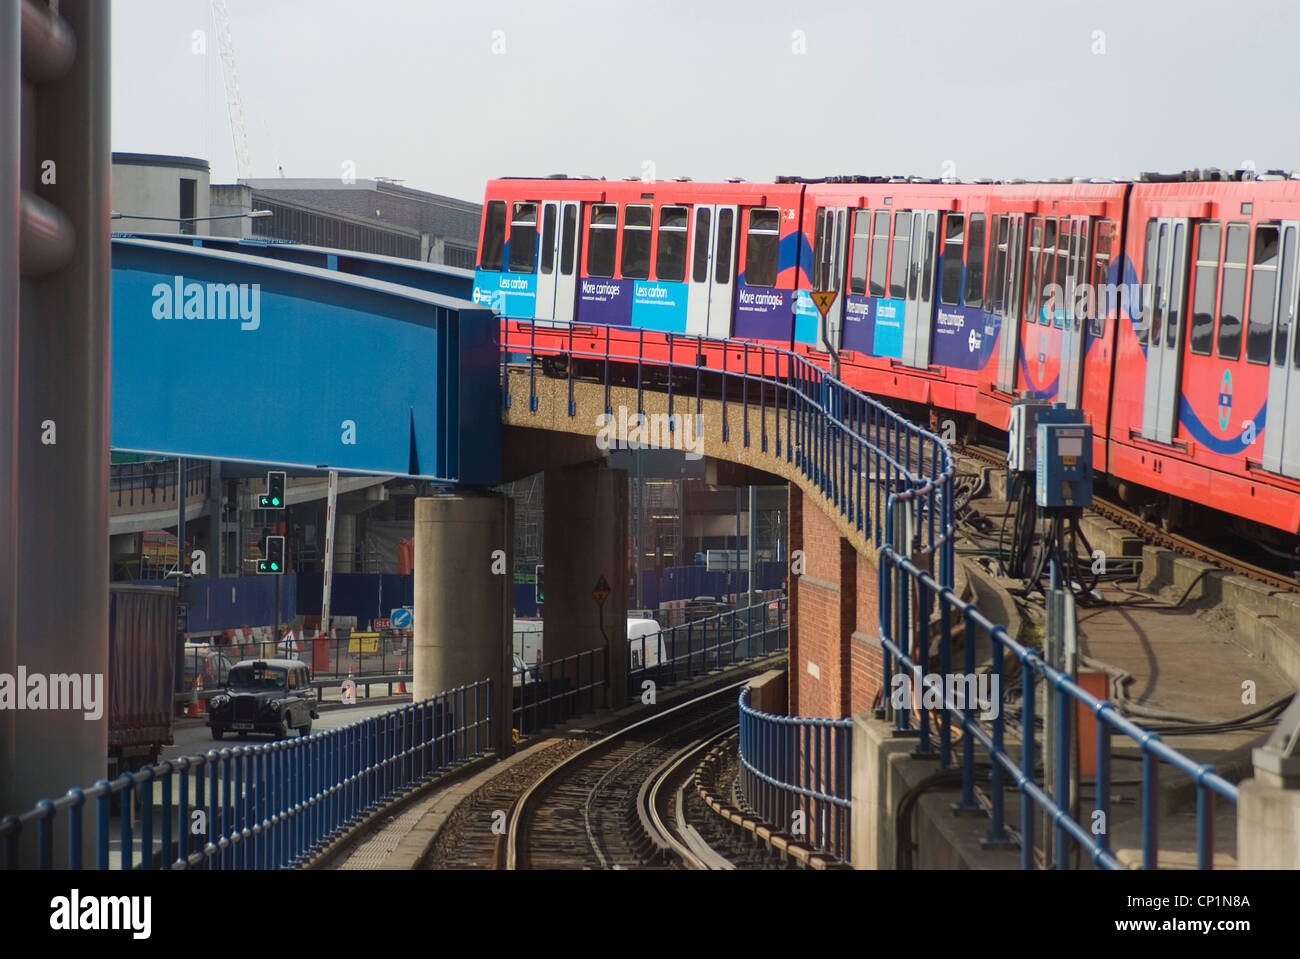 Docklands Light Railway train en route to Canary Wharf (from the east), London E14 - Stock Image